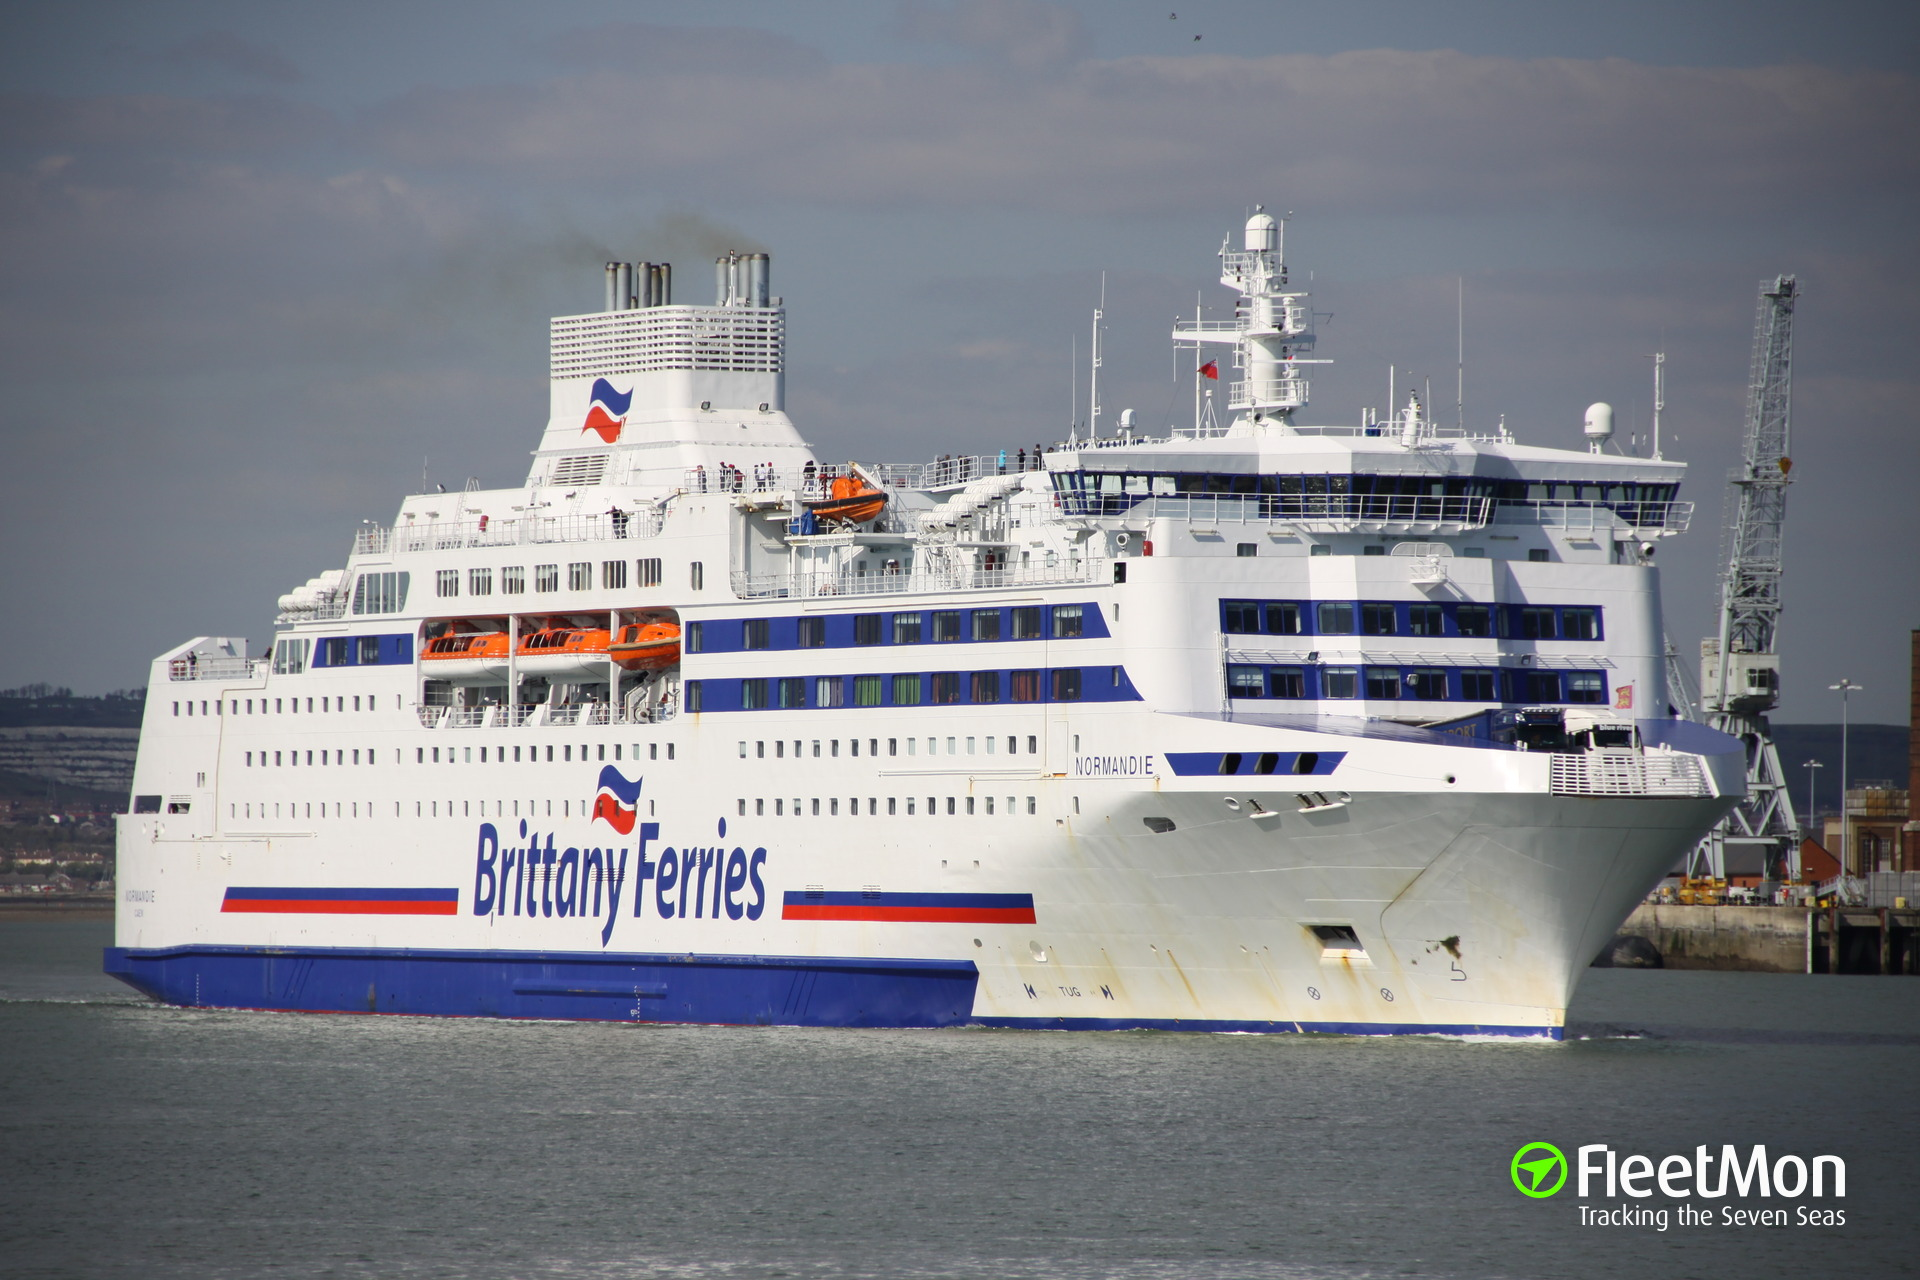 Ferry NORMANDIE power loss, 4 crew suffered burns, 2 serious